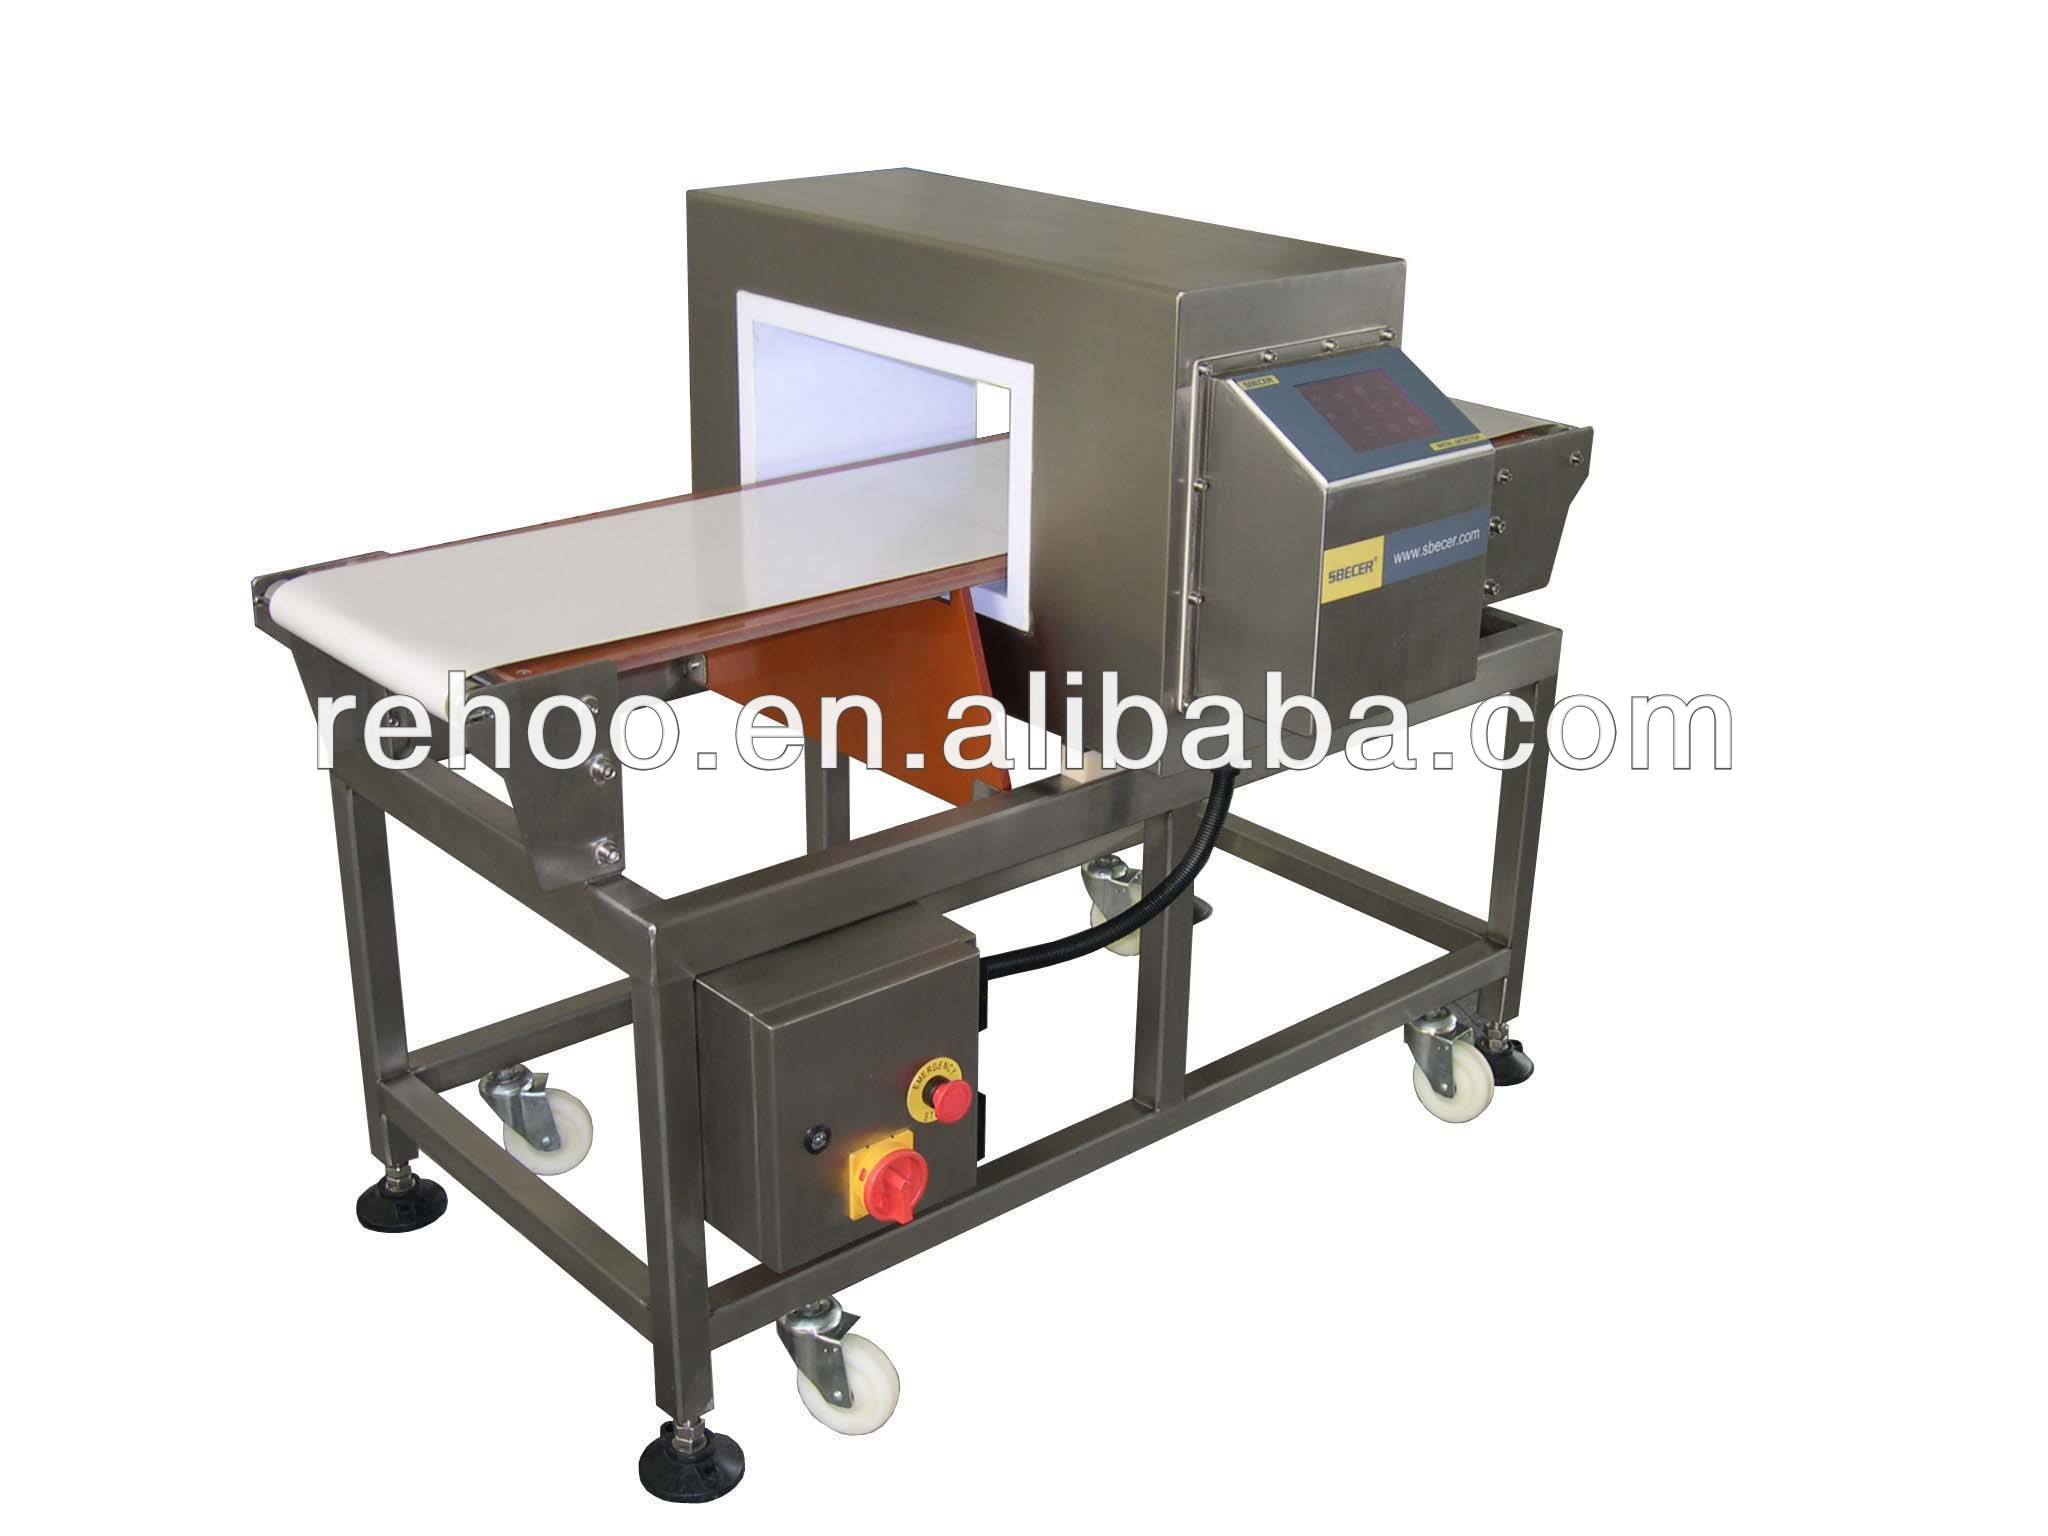 Industrial automatic bread metal detect machine